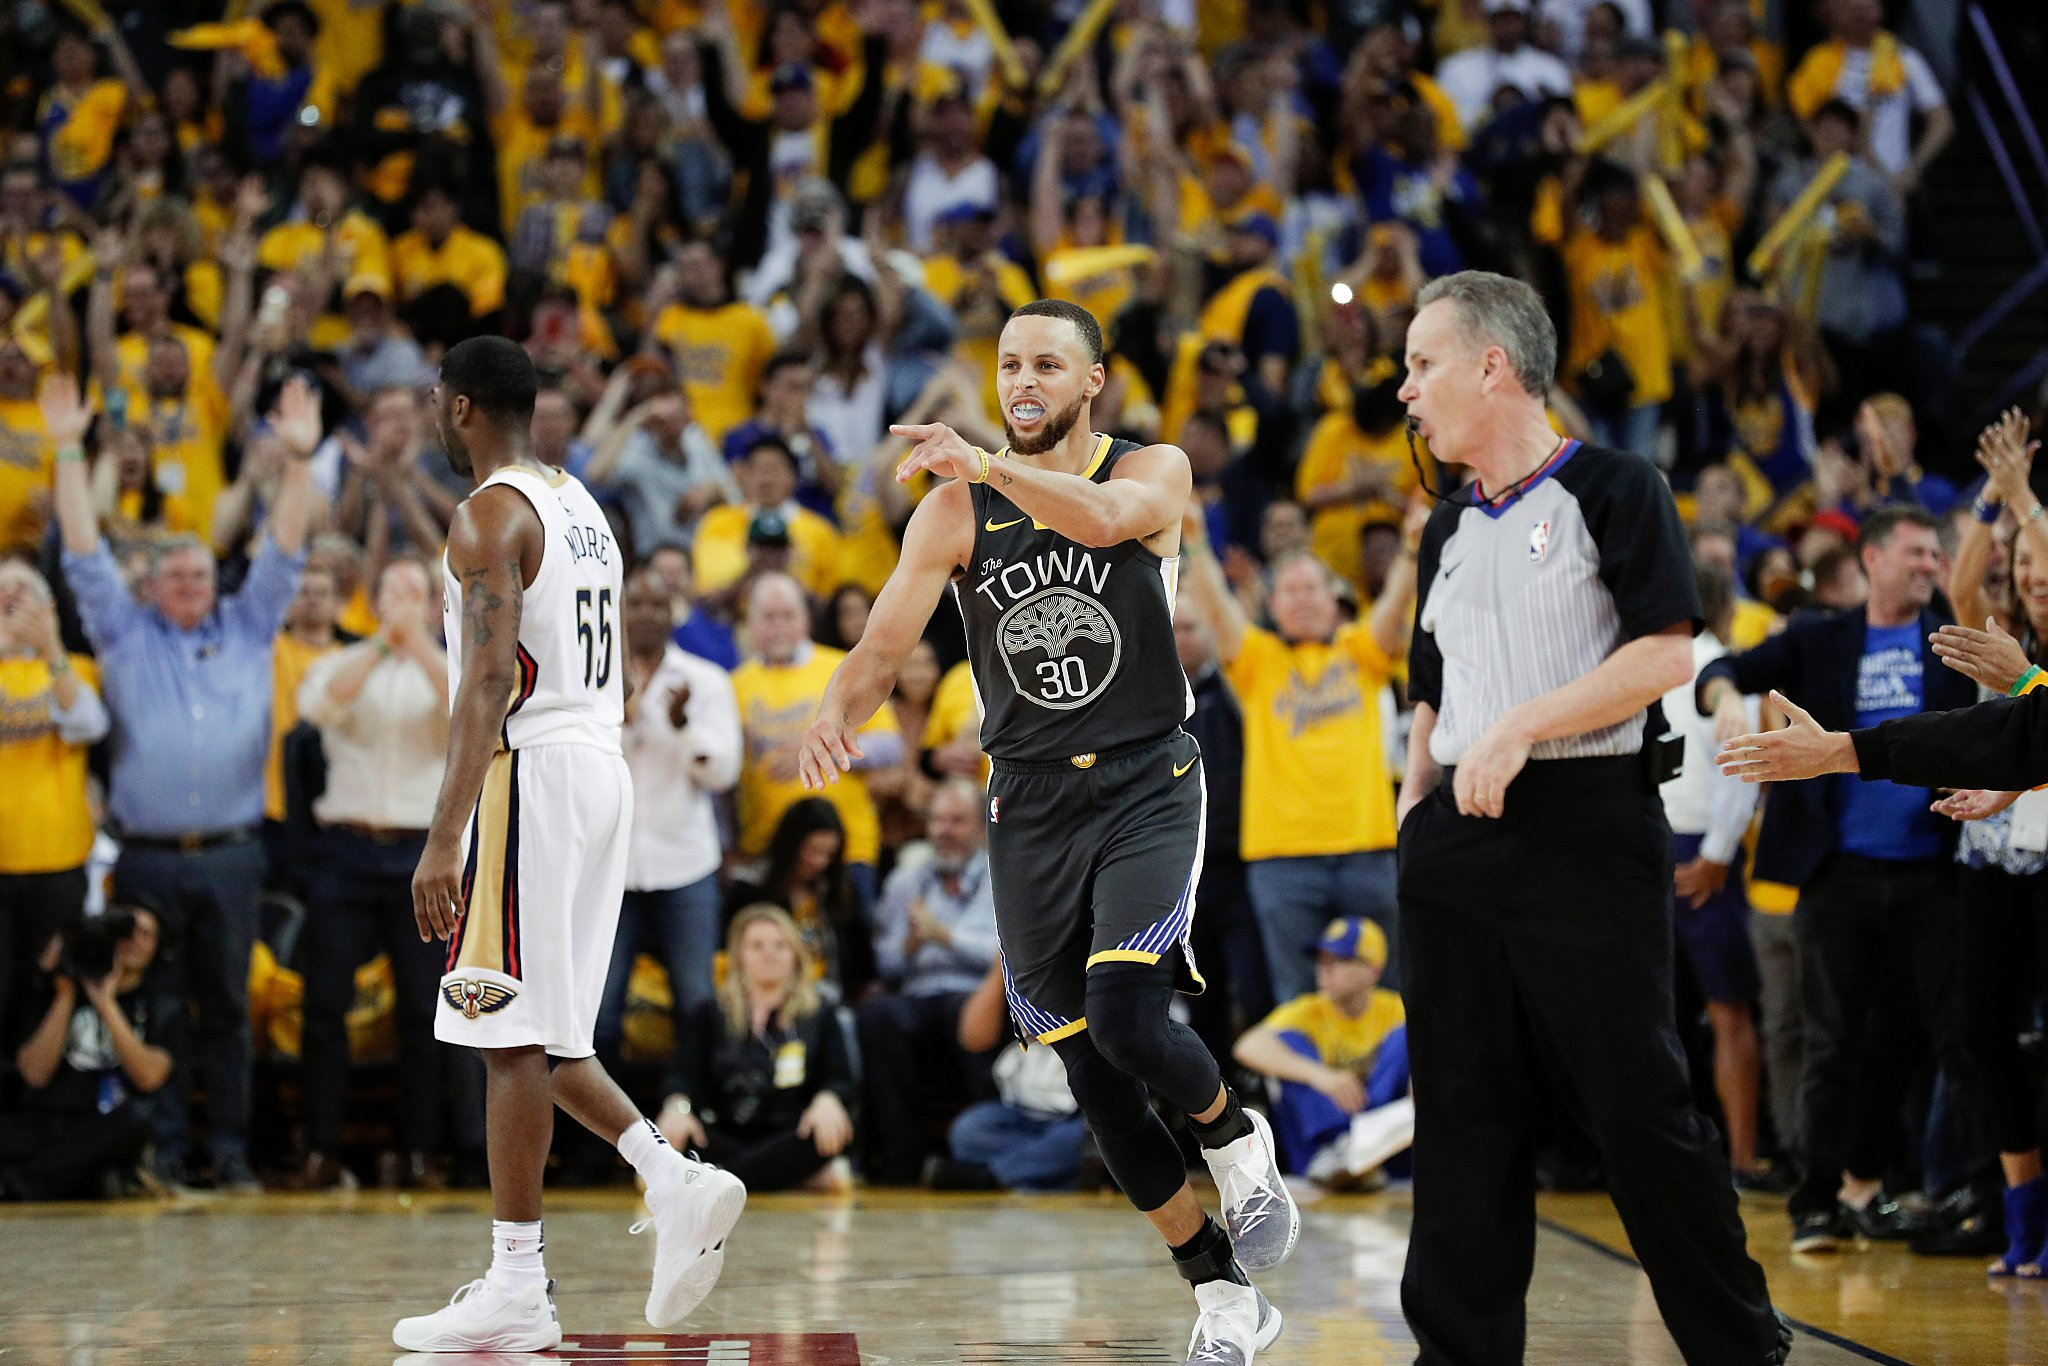 eecf0141afc Stephen Curry dazzles in return as Warriors take 2-0 series lead over  Pelicans - SFGate